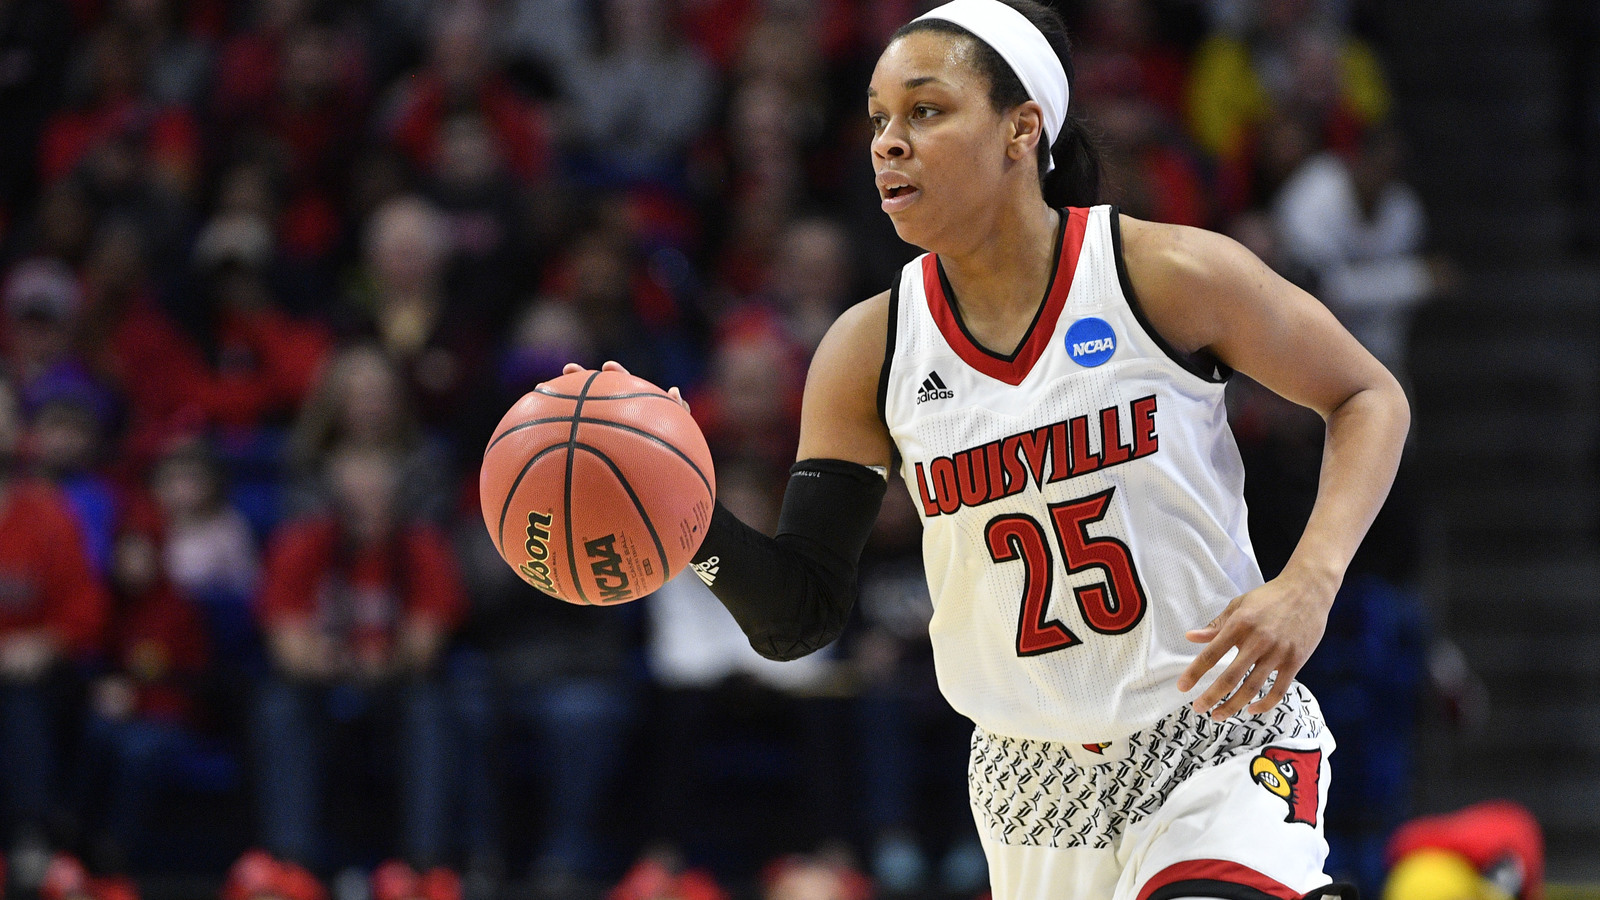 BOZICH | Louisville leads Mississippi State, 48-46, after three quarters